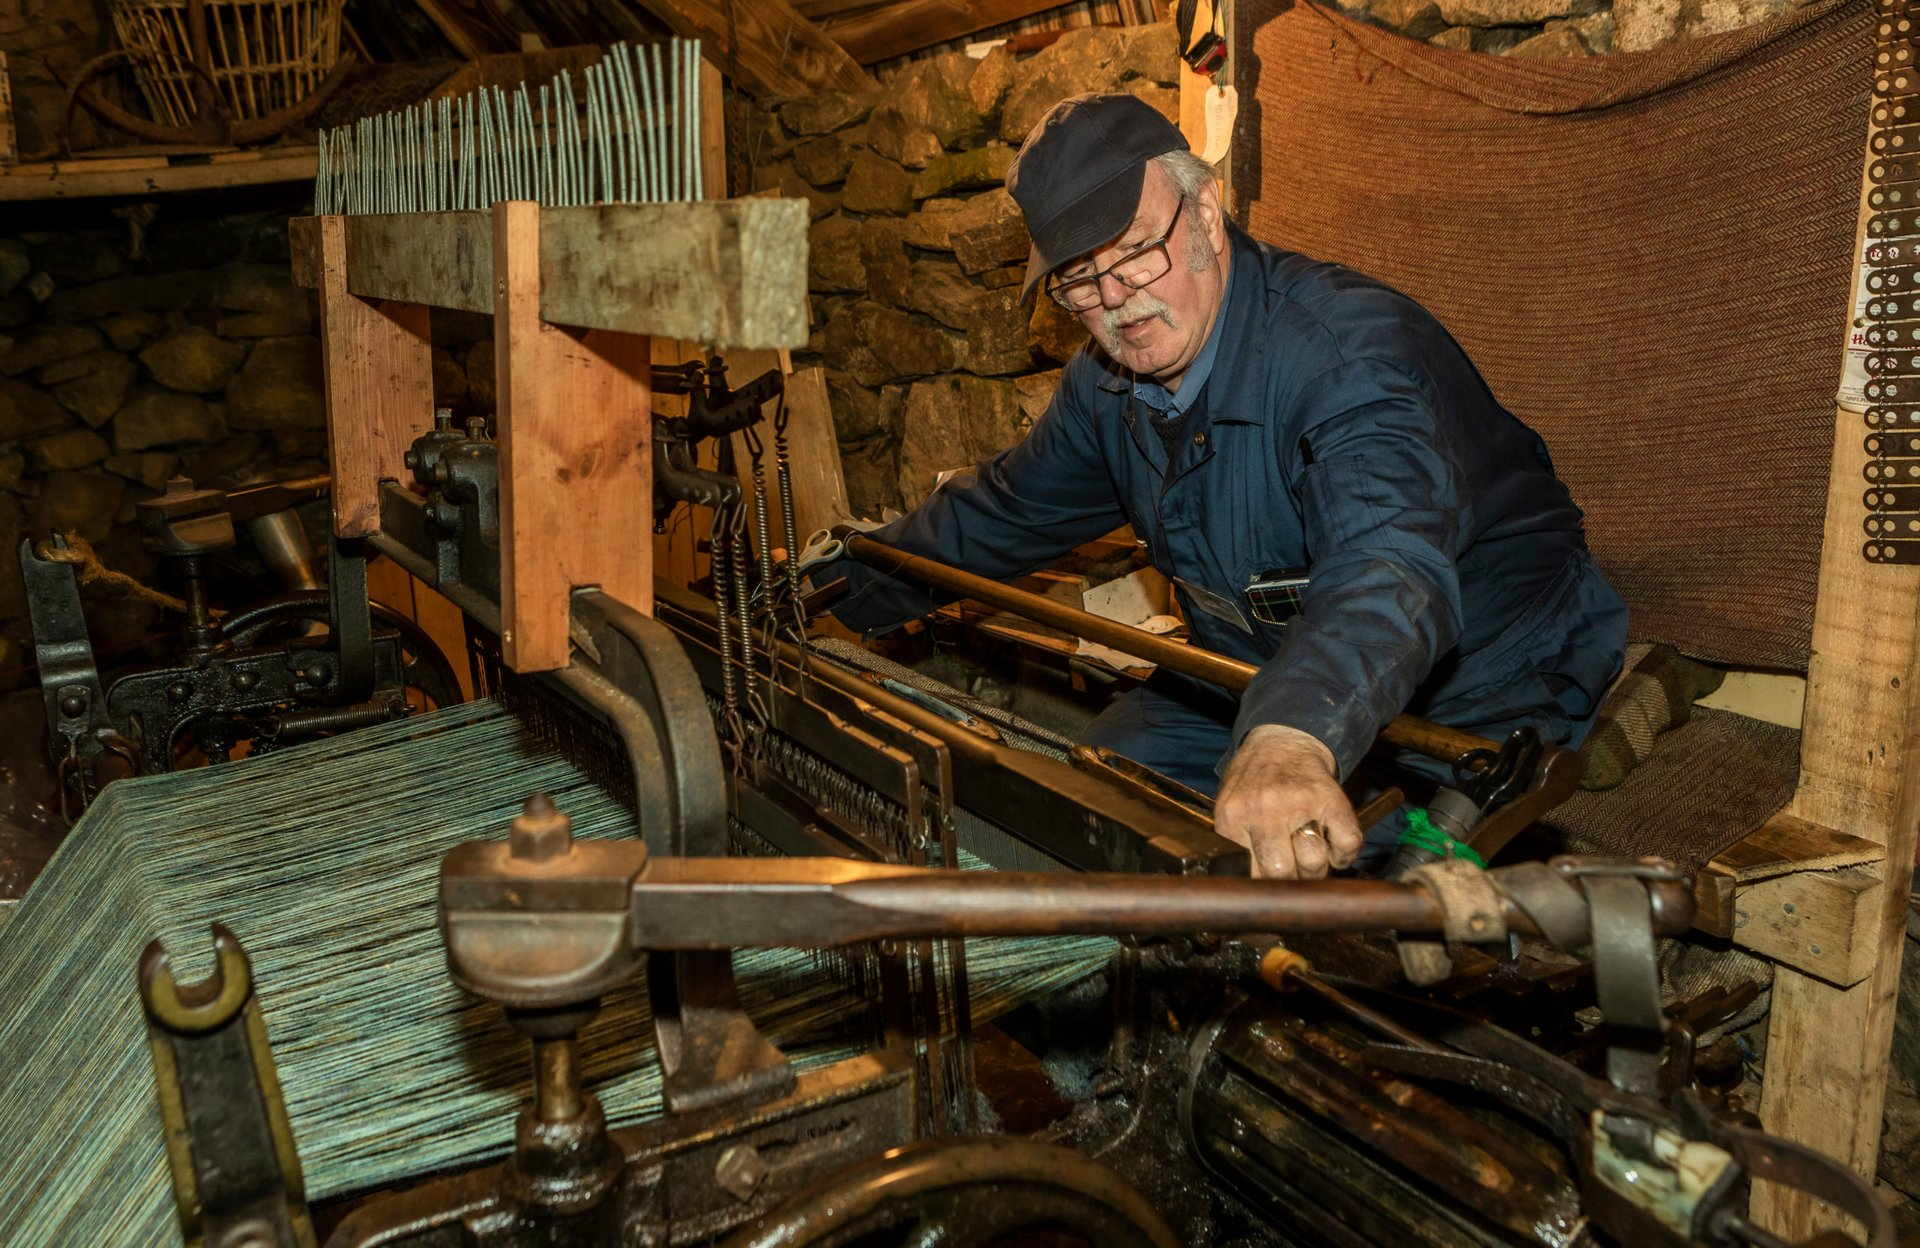 Man weaving Harris Tweed fabric